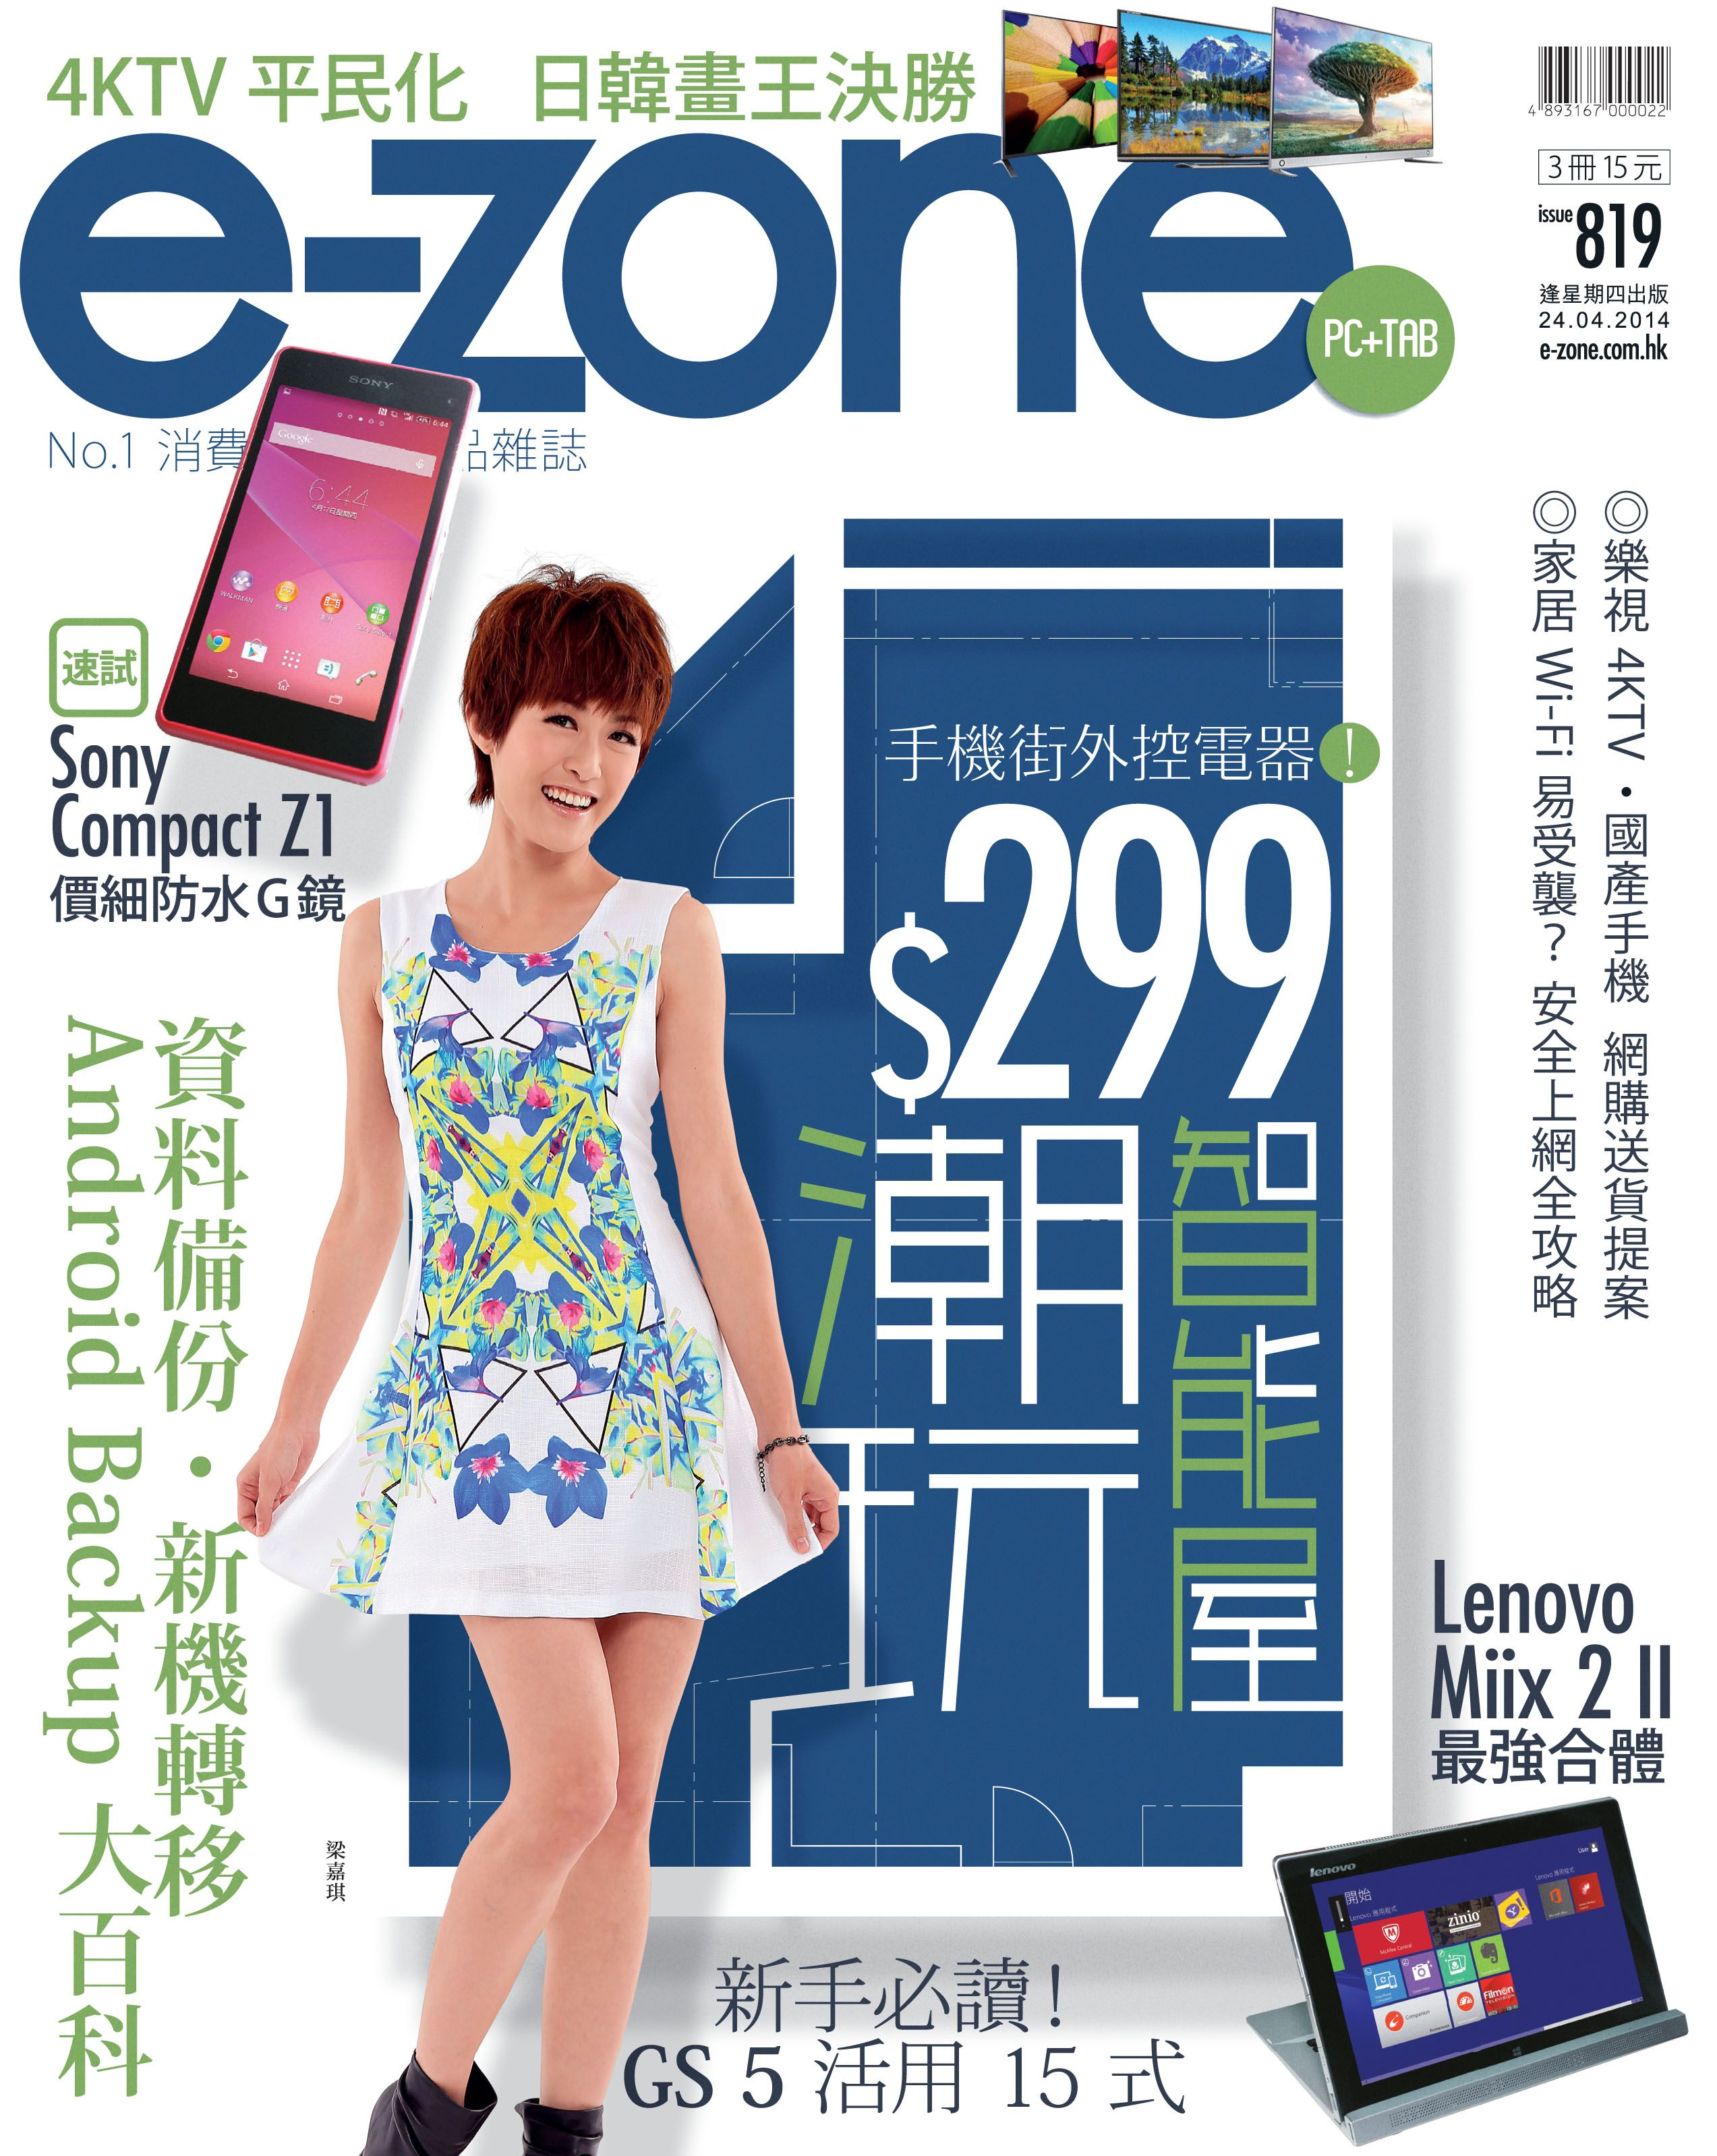 Issue 819 PC (23 Apr 2014)